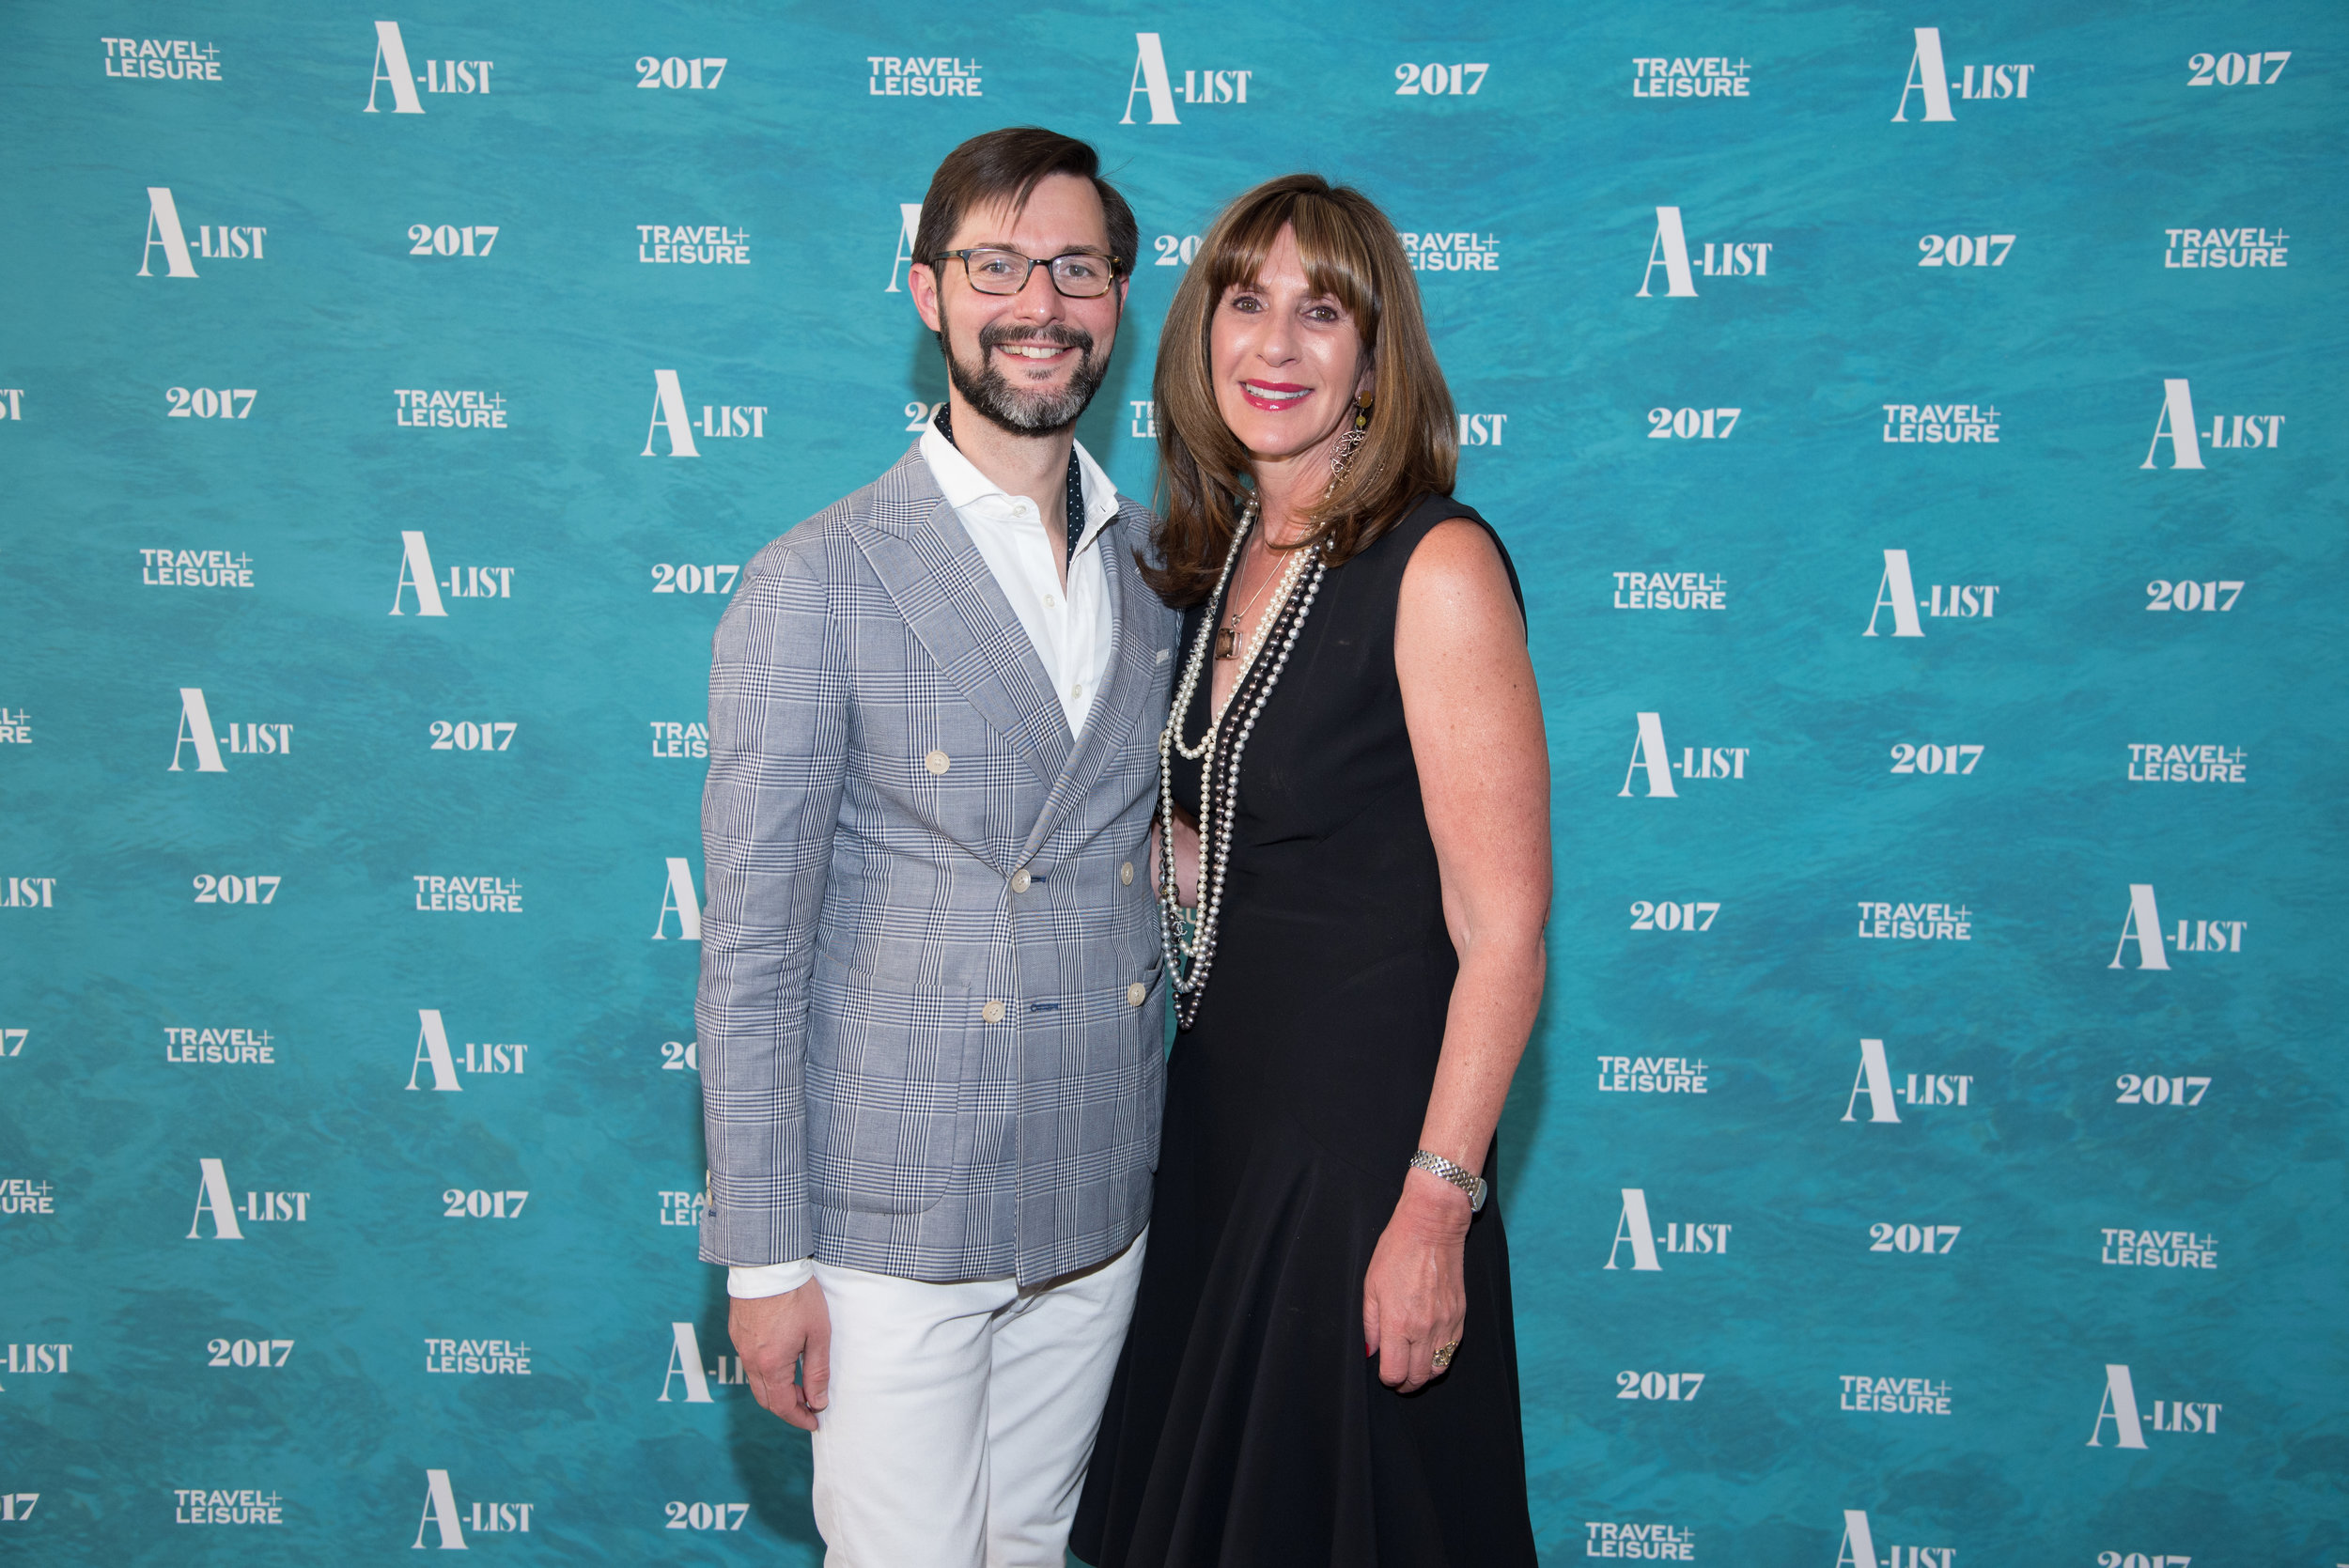 The 2017 A-List travel advisors are honored at an exclusive event at Virtuoso Travel Week in Las Vegas, Nevada